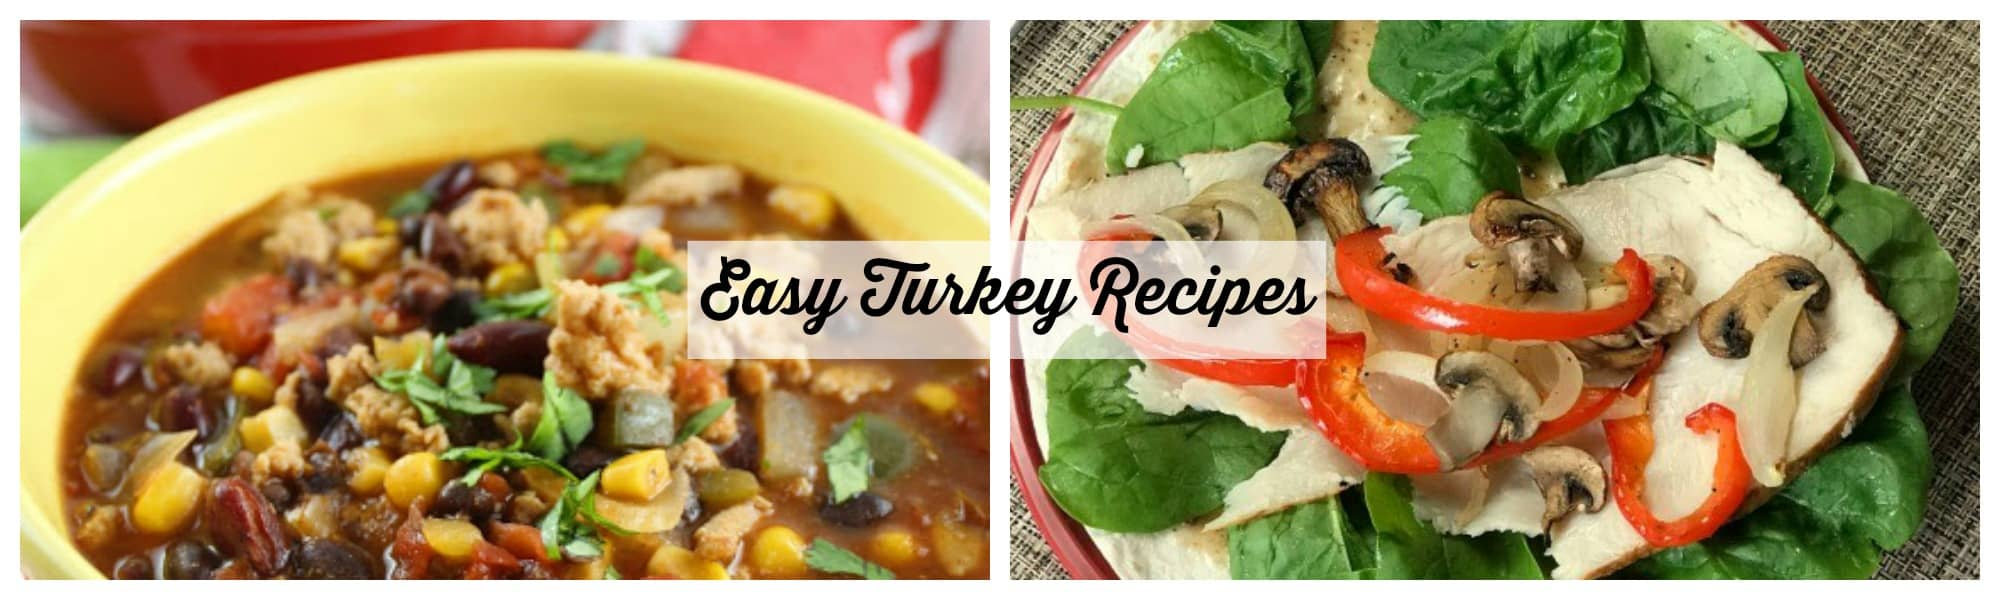 Easy Turkey Recipes